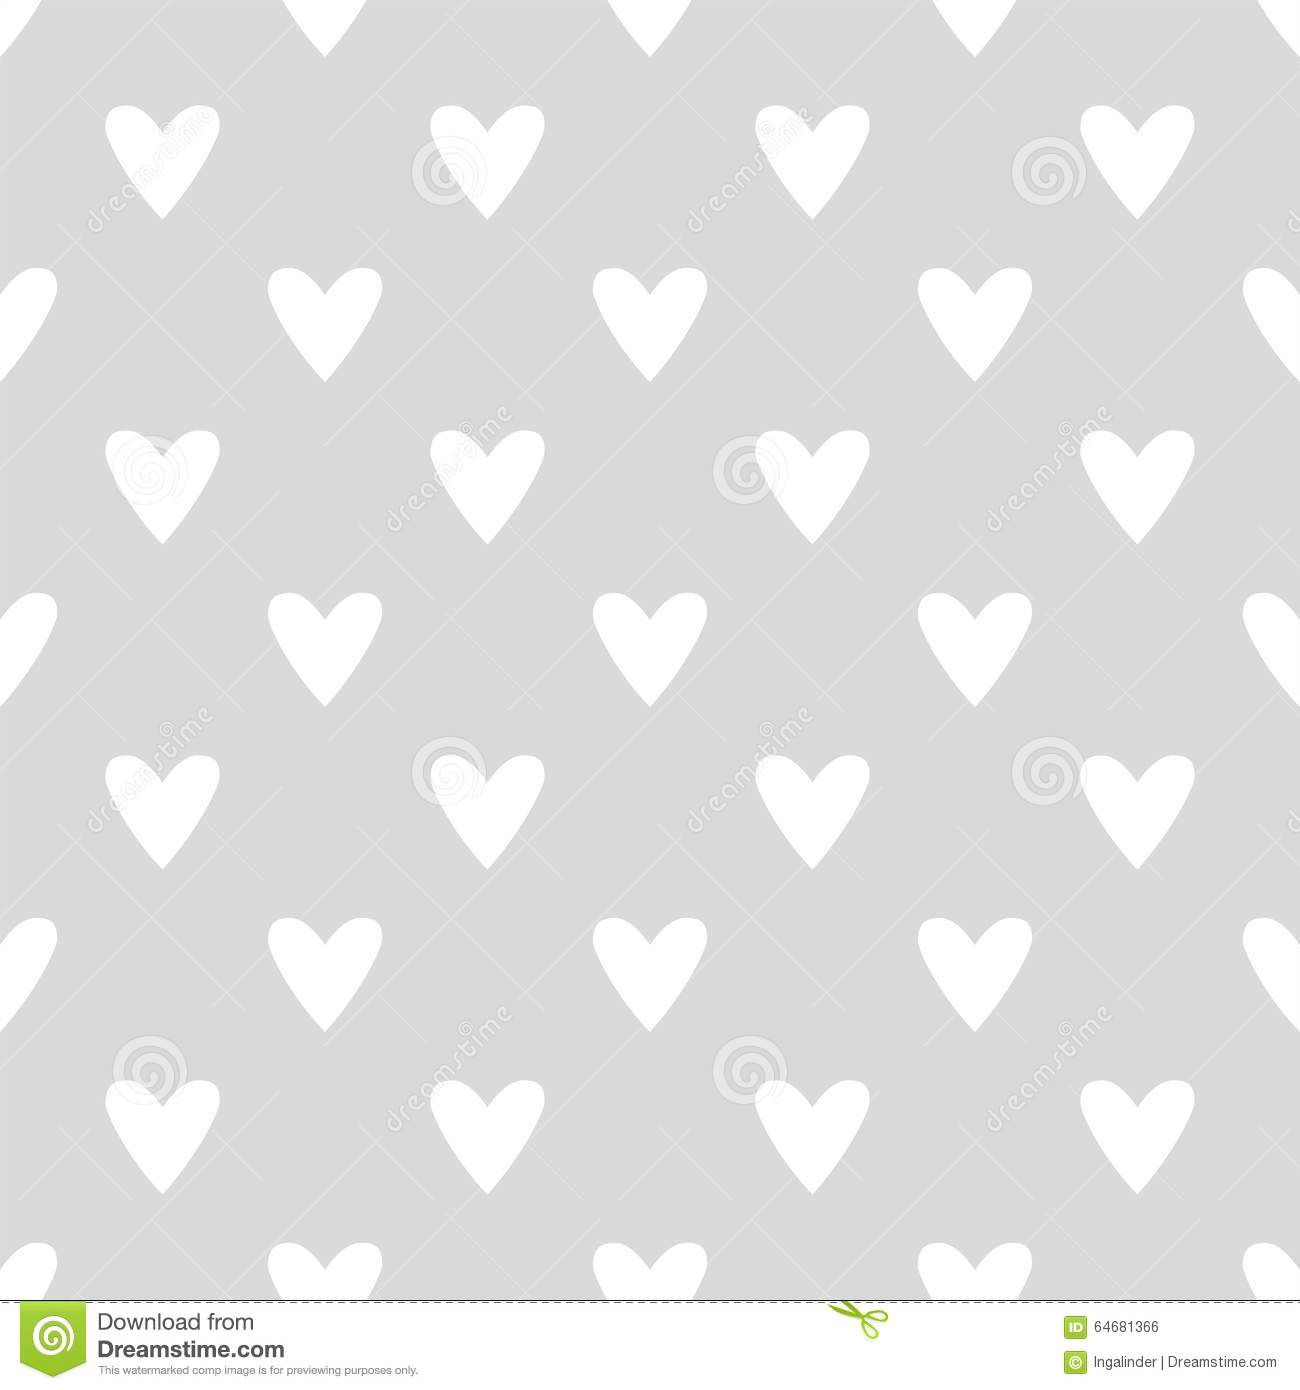 tile vector pattern with white hearts on grey background